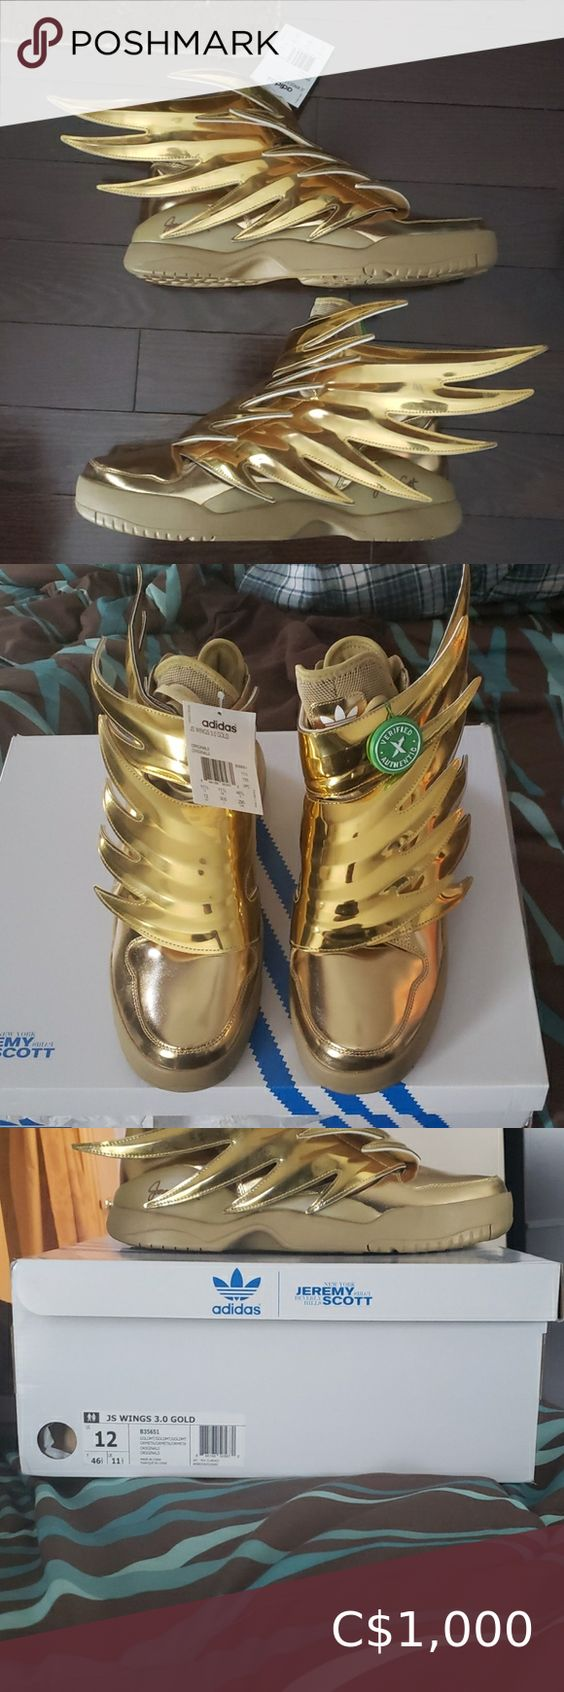 Jeremy Scott Adidas 3 0 Gold Size 12 Brand New Never Before Worn With Original Tags Undamage In 2020 Jeremy Scott Adidas Running Shoes For Men Adidas Basketball Shoes